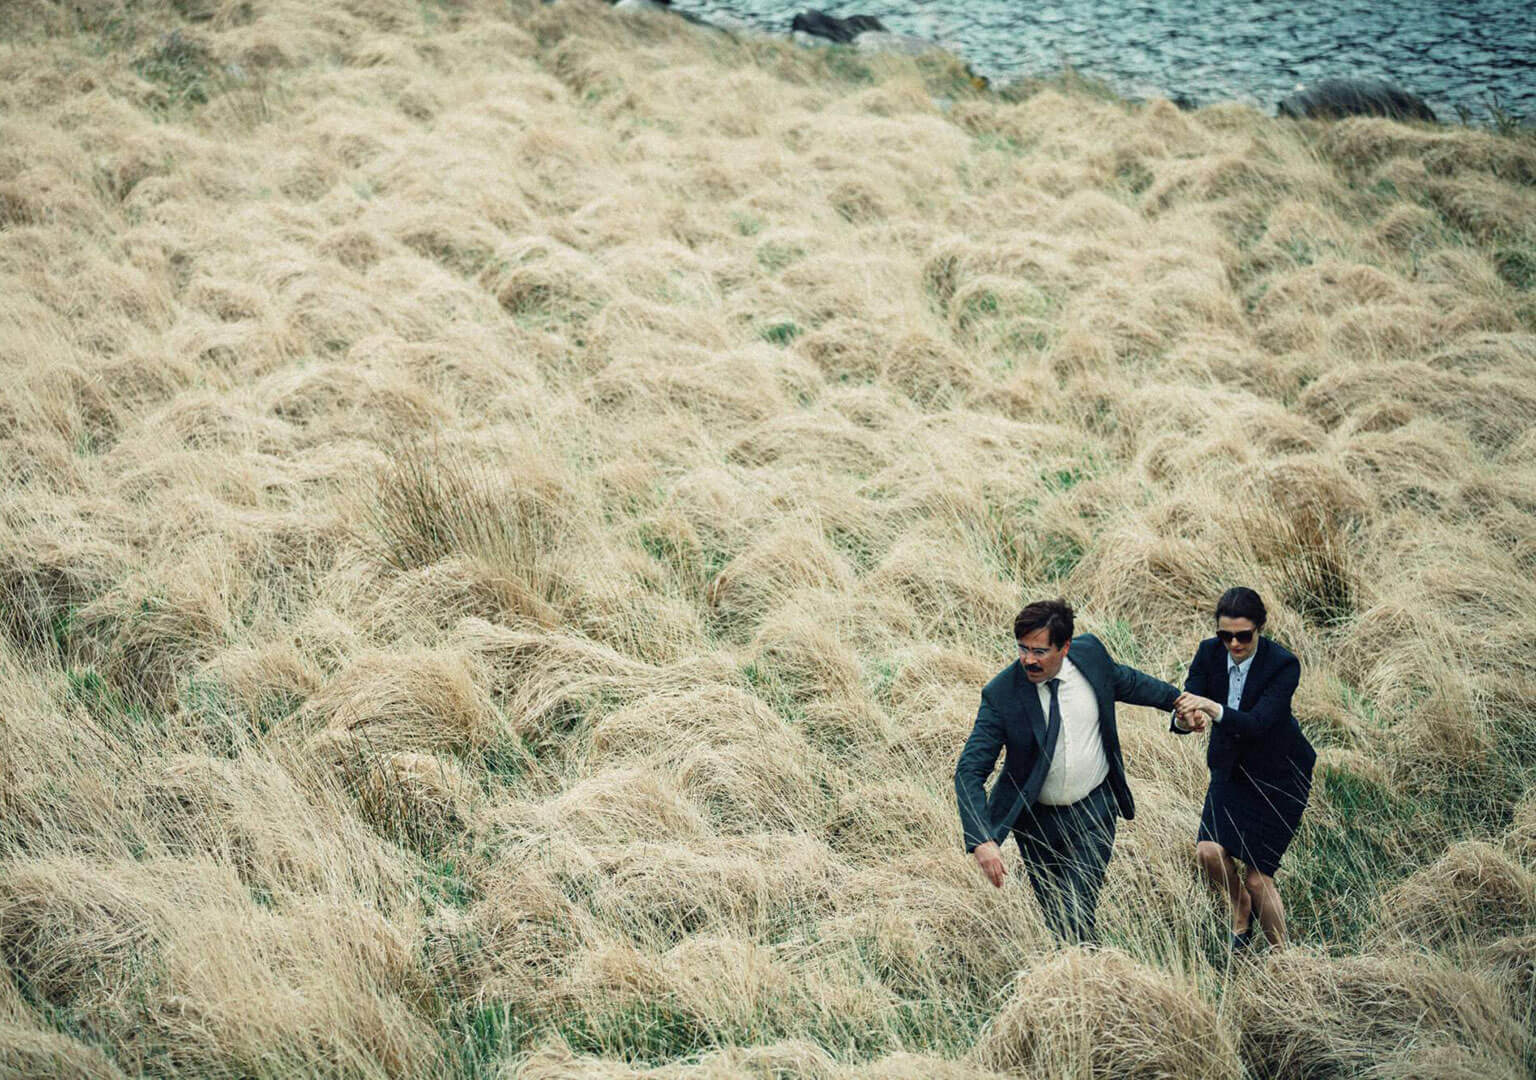 Video still from The Lobster